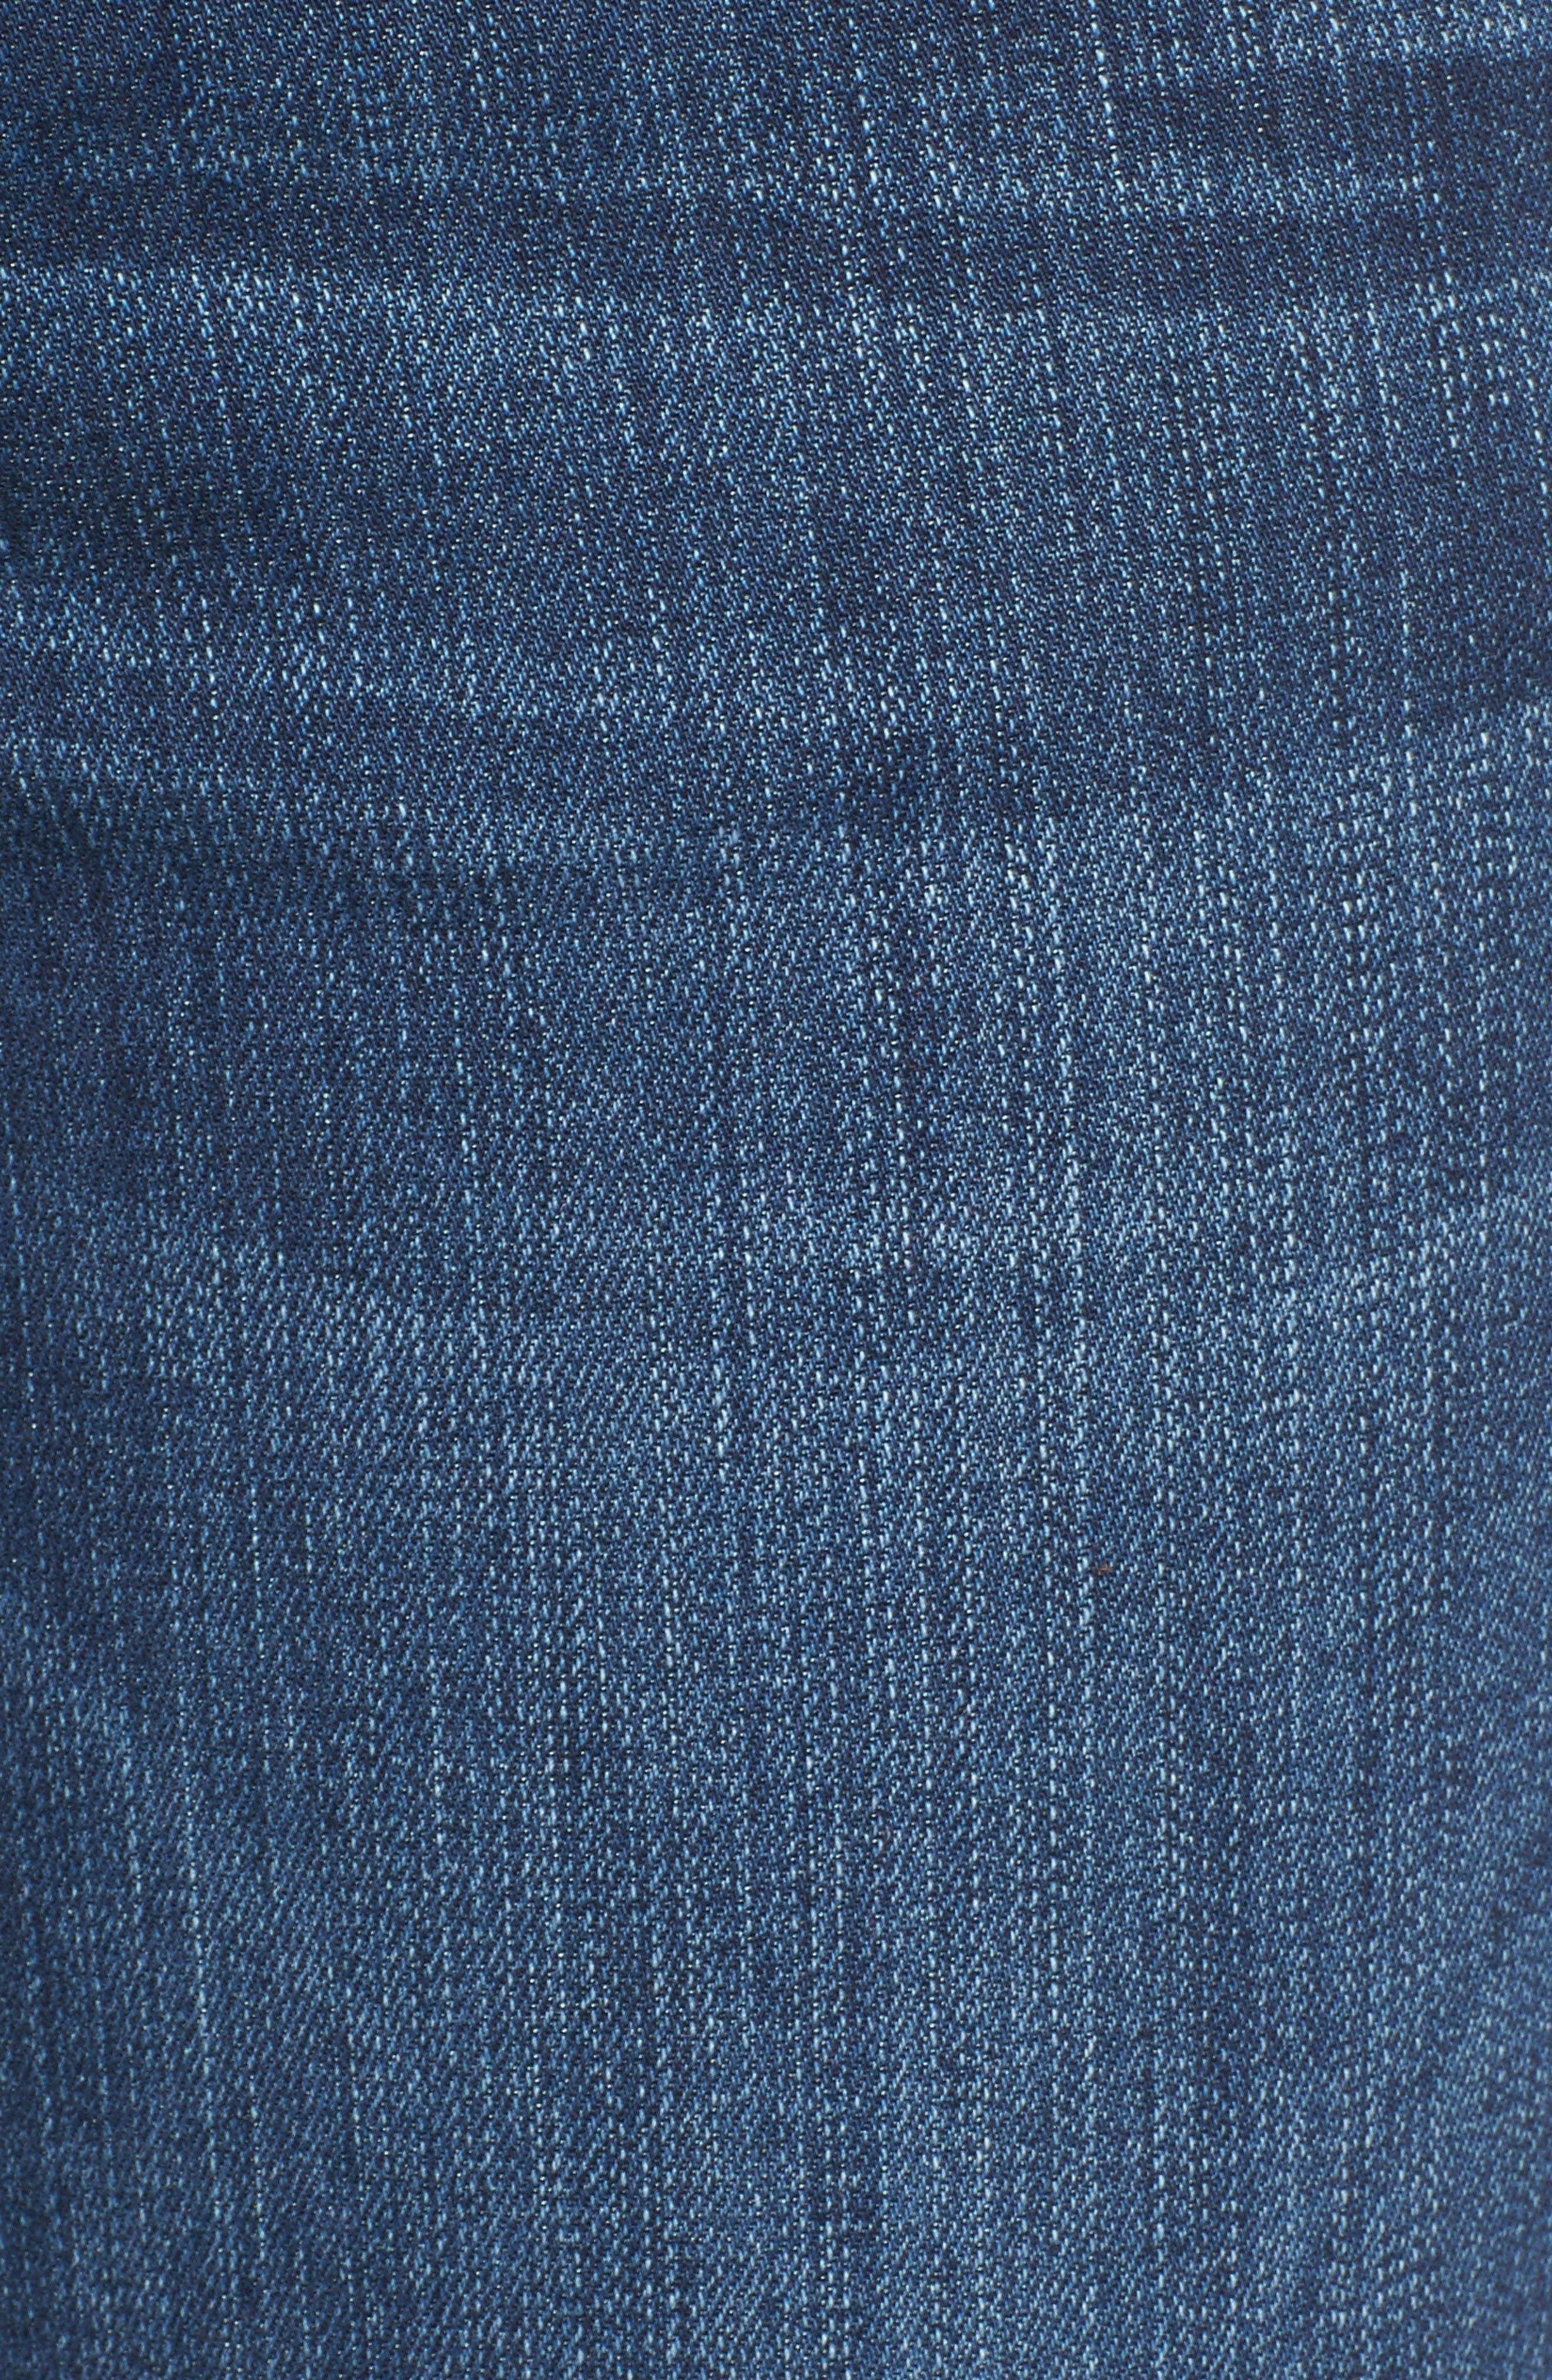 Alternate Image 5  - KUT from the Kloth Diana Stretch Skinny Jeans (Moderation) (Regular & Petite)